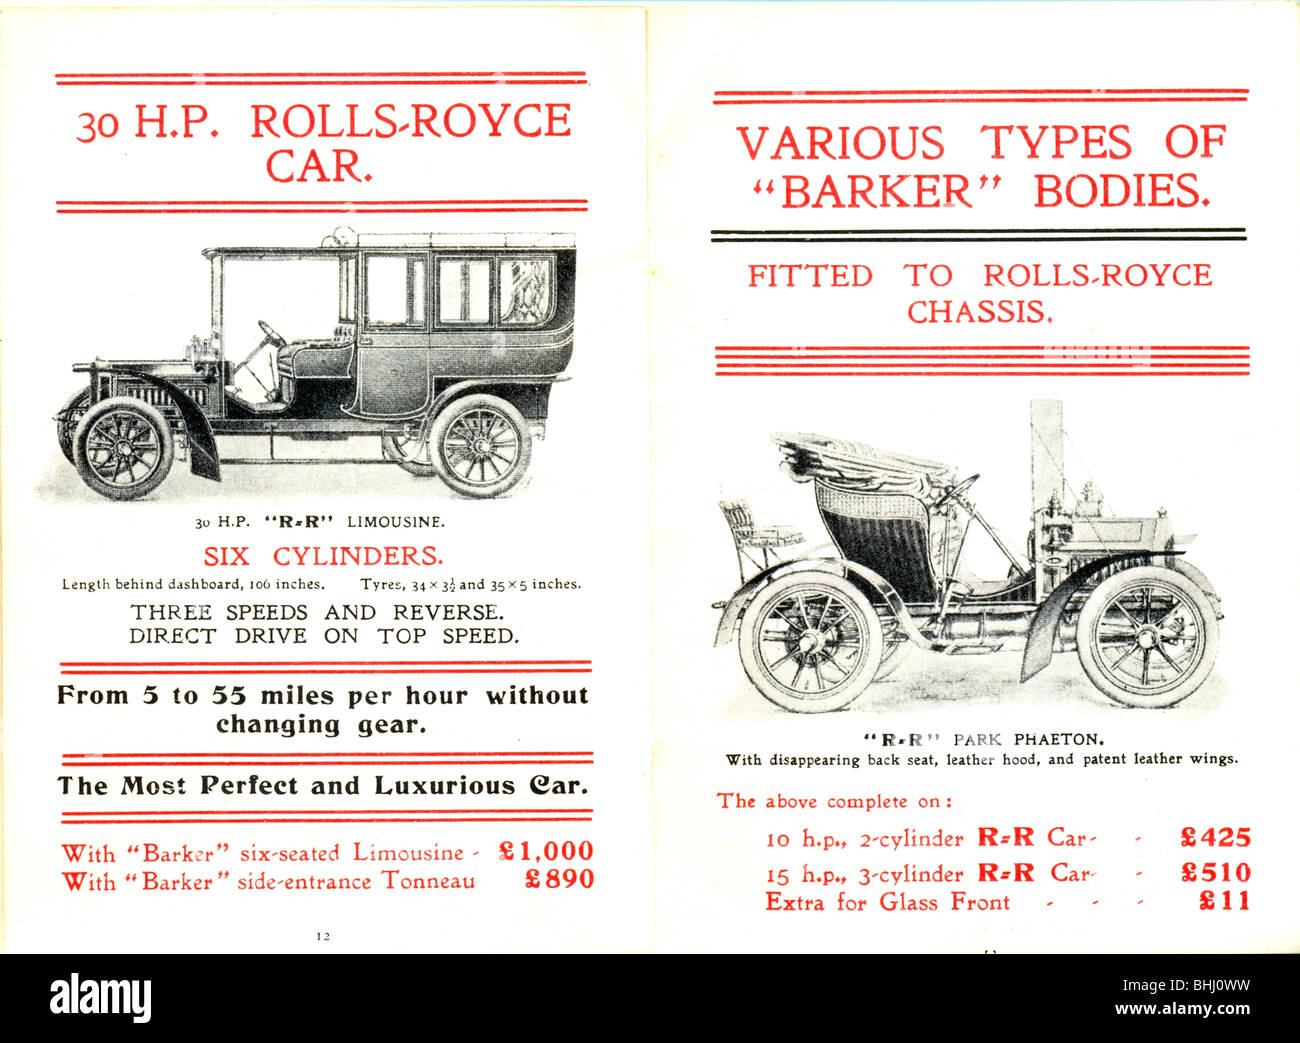 The New All British Motor Car Rolls Royce Advertising Booklet